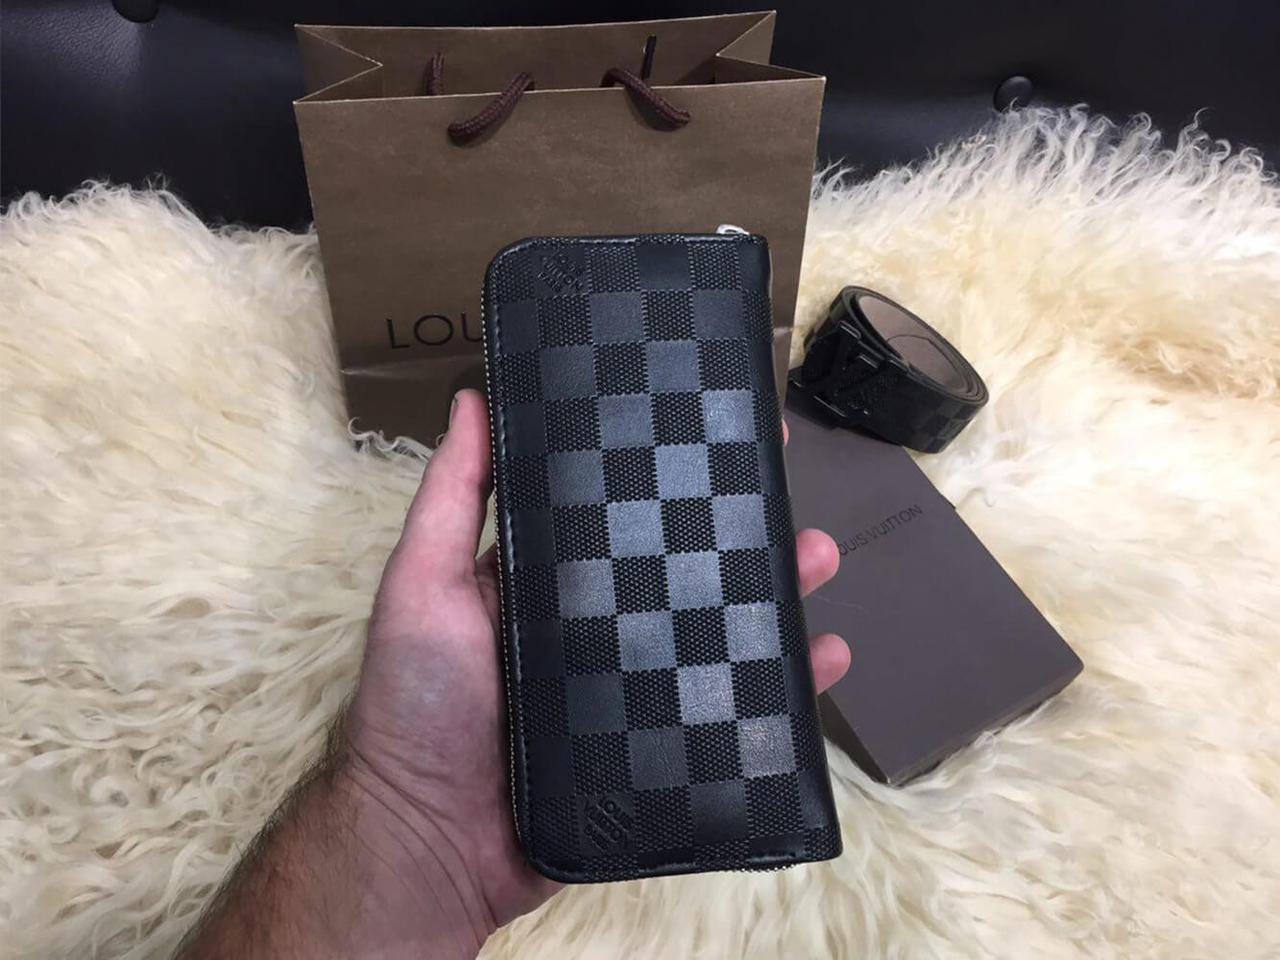 f755583fb6c0 Кошелек Louis Vuitton Zippy Vertical Damier Infini реплика: продажа ...